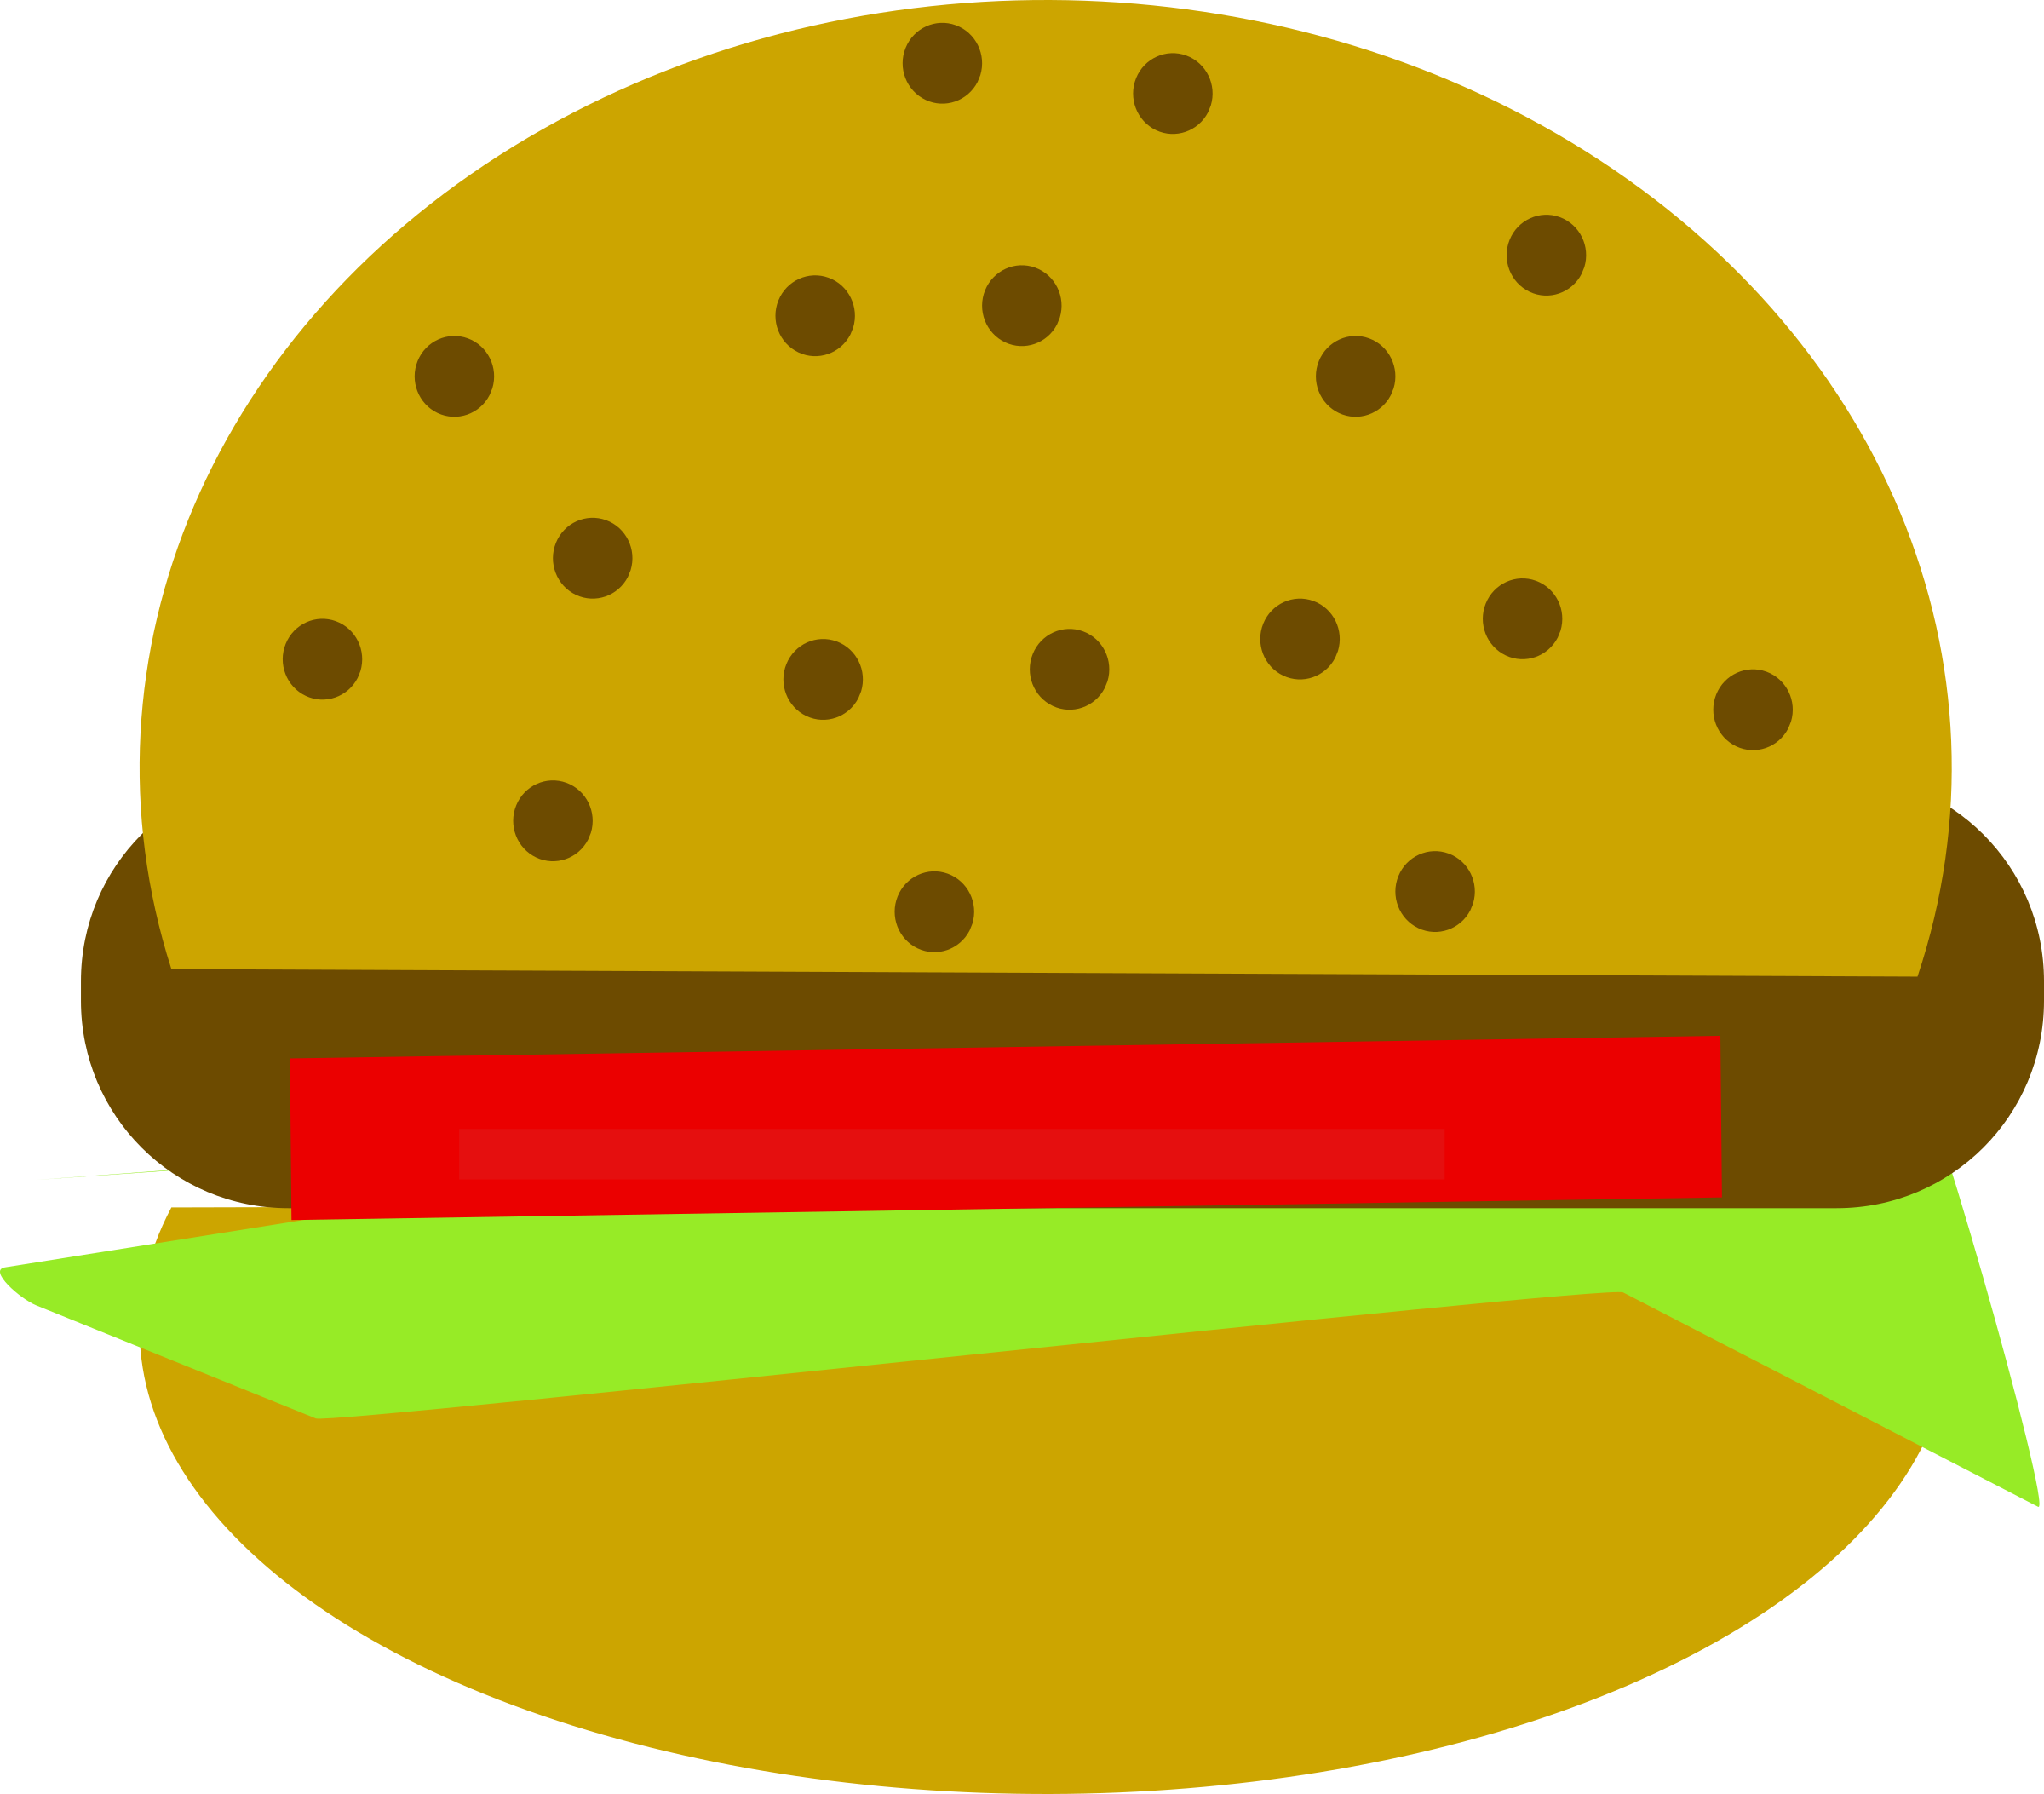 Hamburger - new version by Magnesus